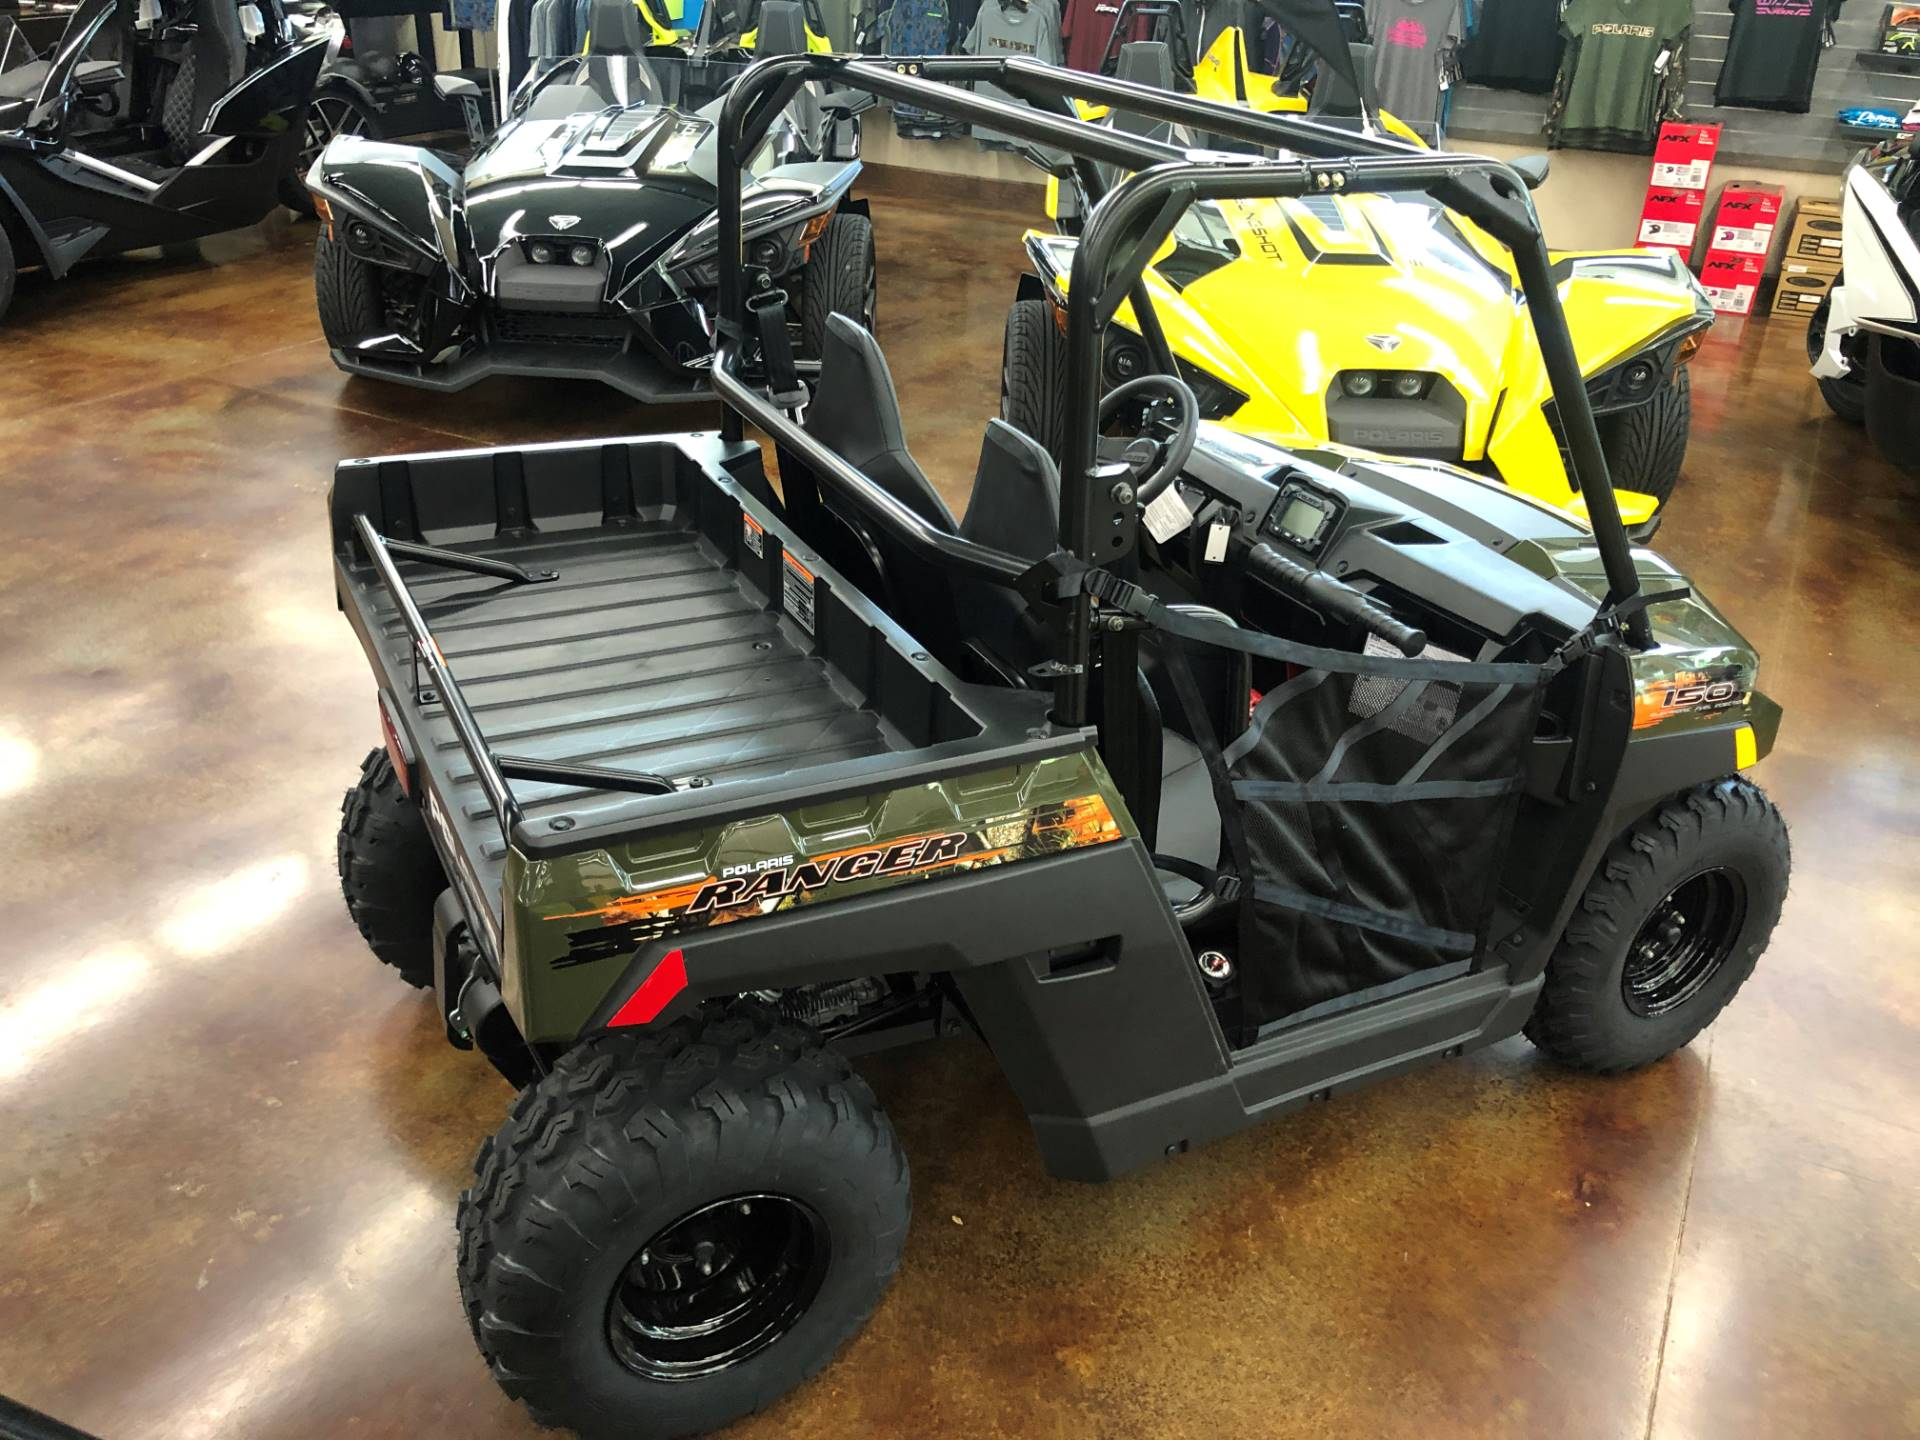 2020 Polaris Ranger 150 EFI in Fleming Island, Florida - Photo 3